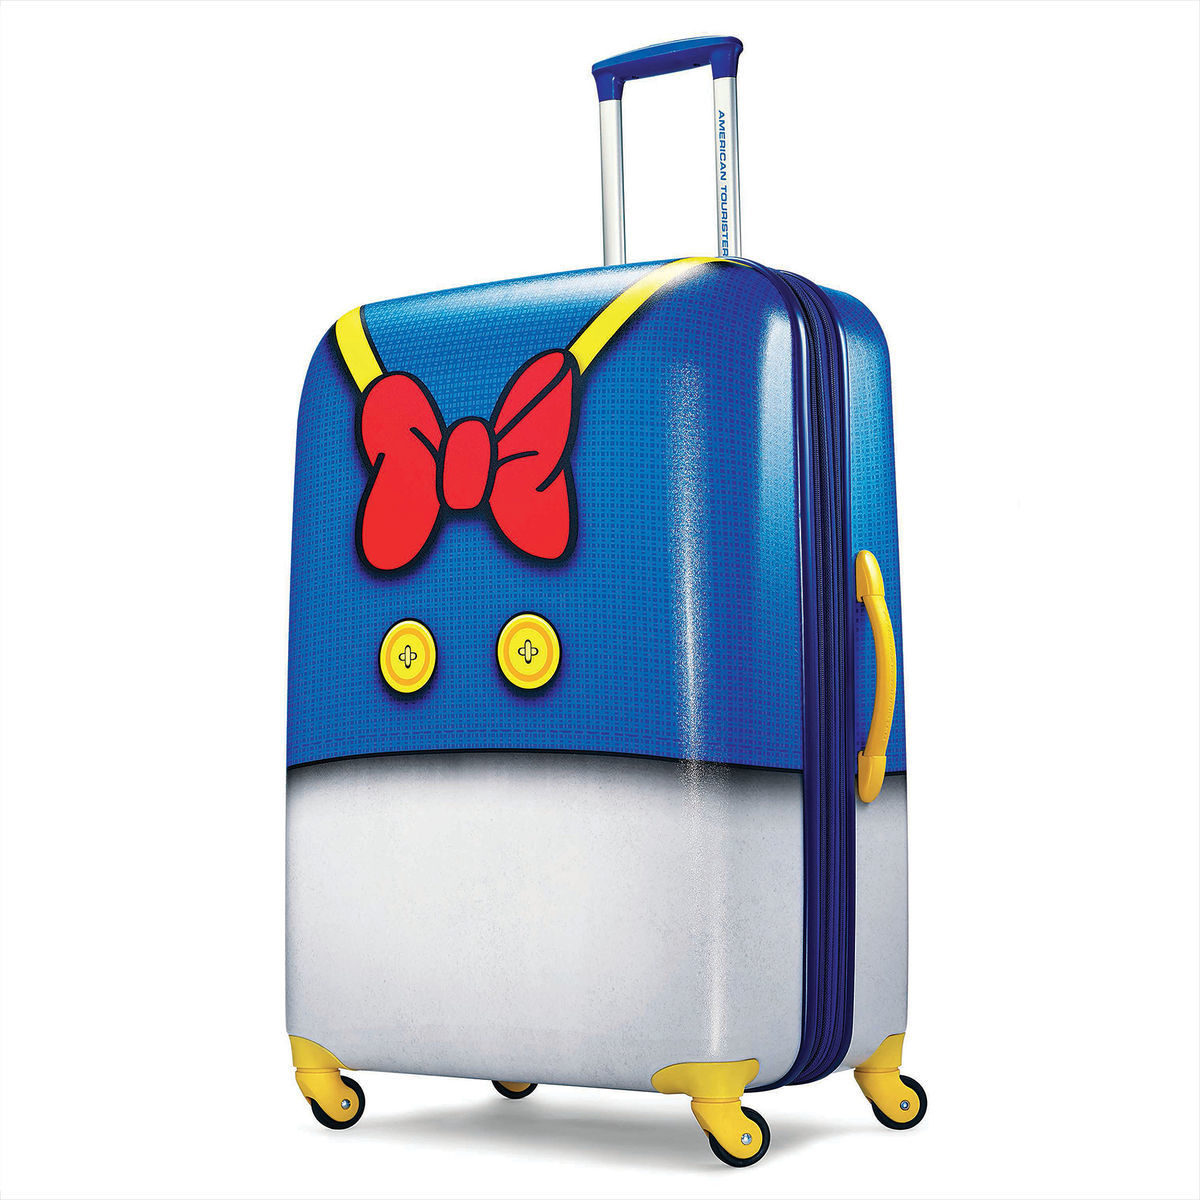 Product Image of Donald Duck Luggage - American Tourister - Large # 1